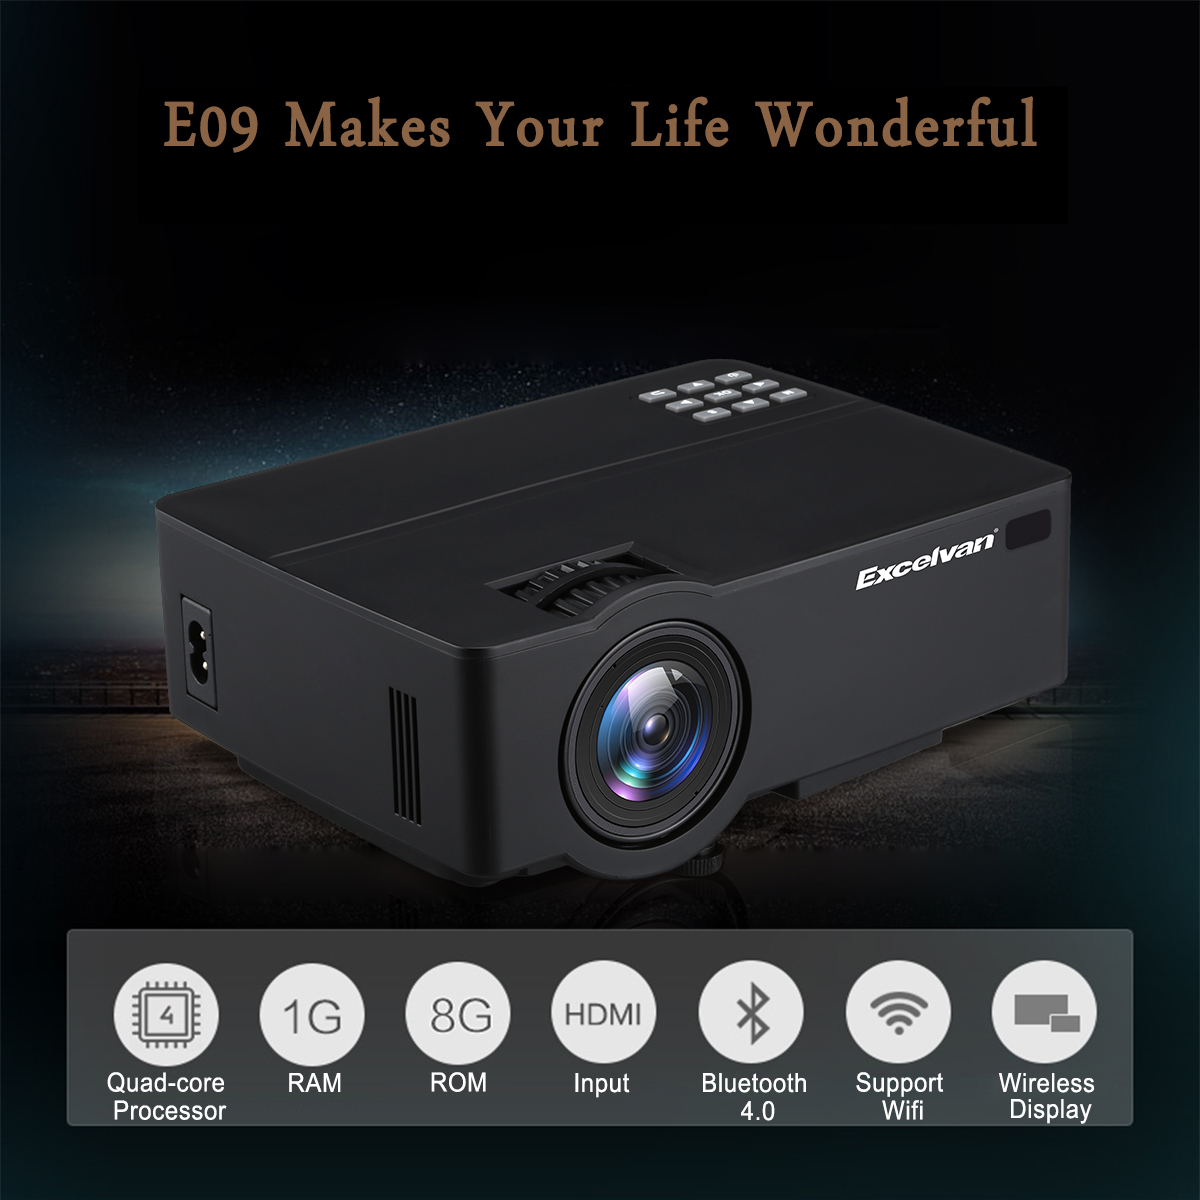 Excelvan Cl720 Full Hd Home Theater Projector 3000 Lumen: Excelvan E09 E08S Android 6.0.1 Multimedia Home Theater